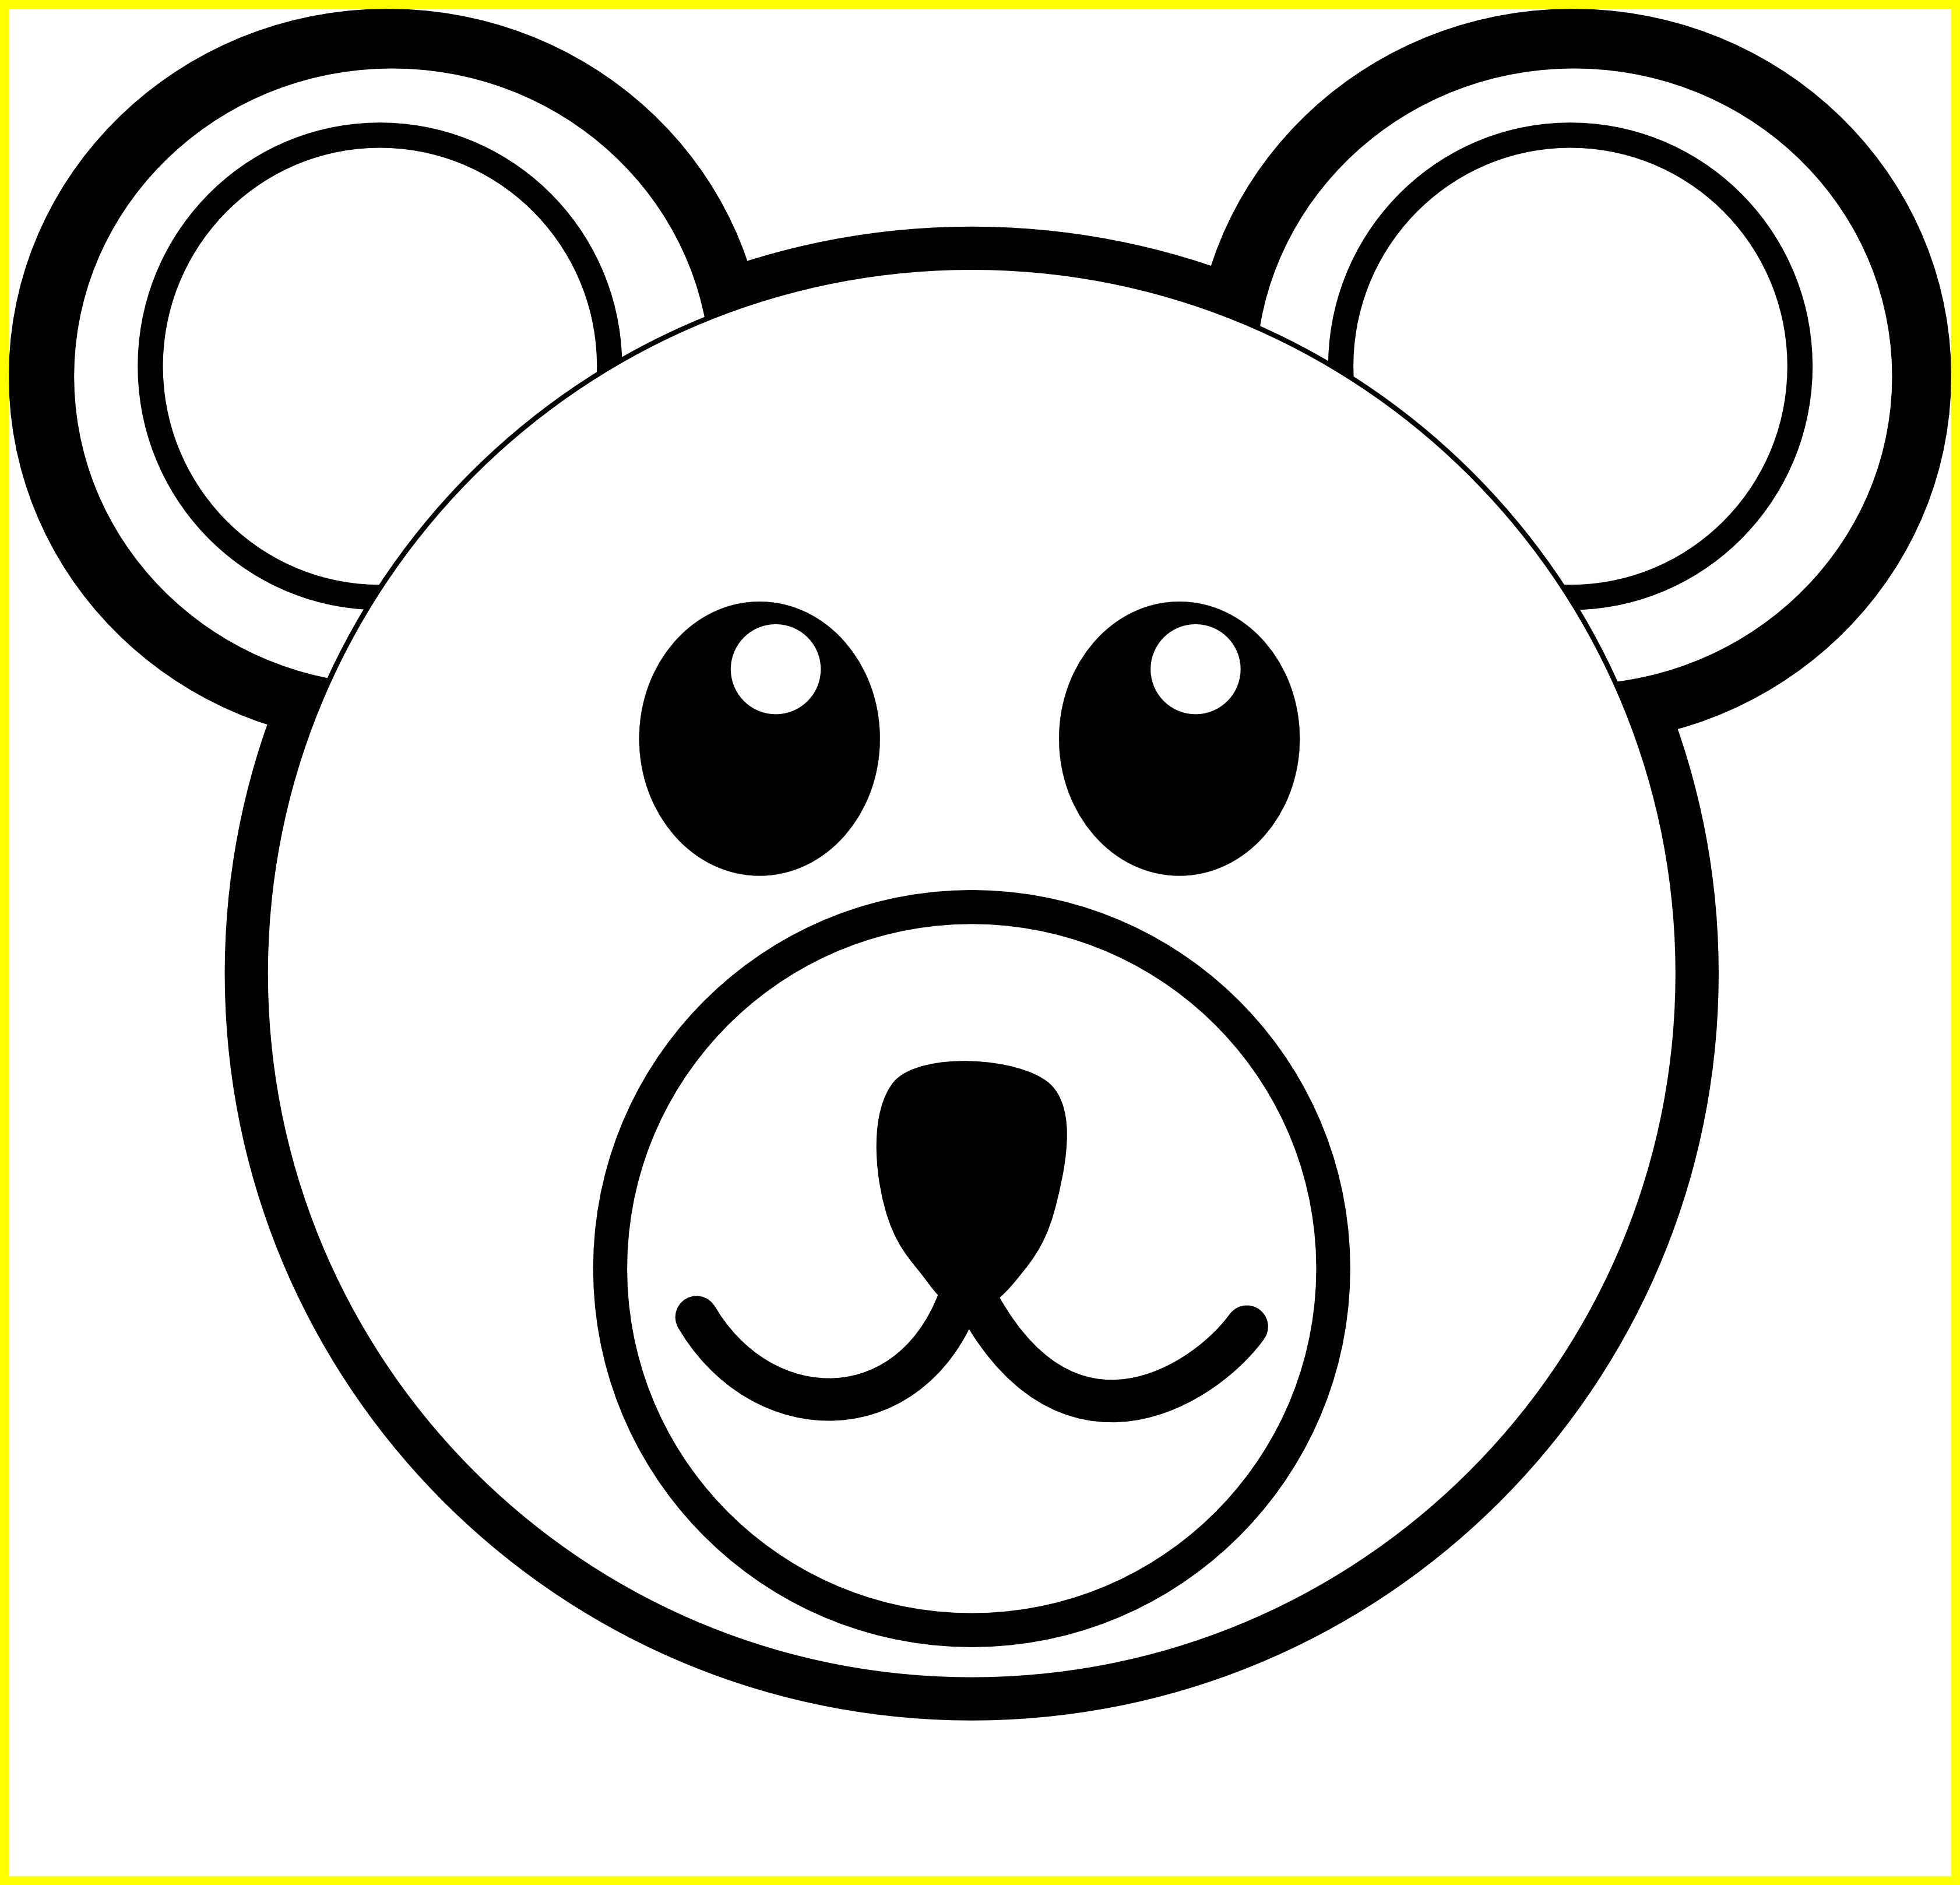 svg black and white download Koala bear clipart black and white. Appealing polar panda picture